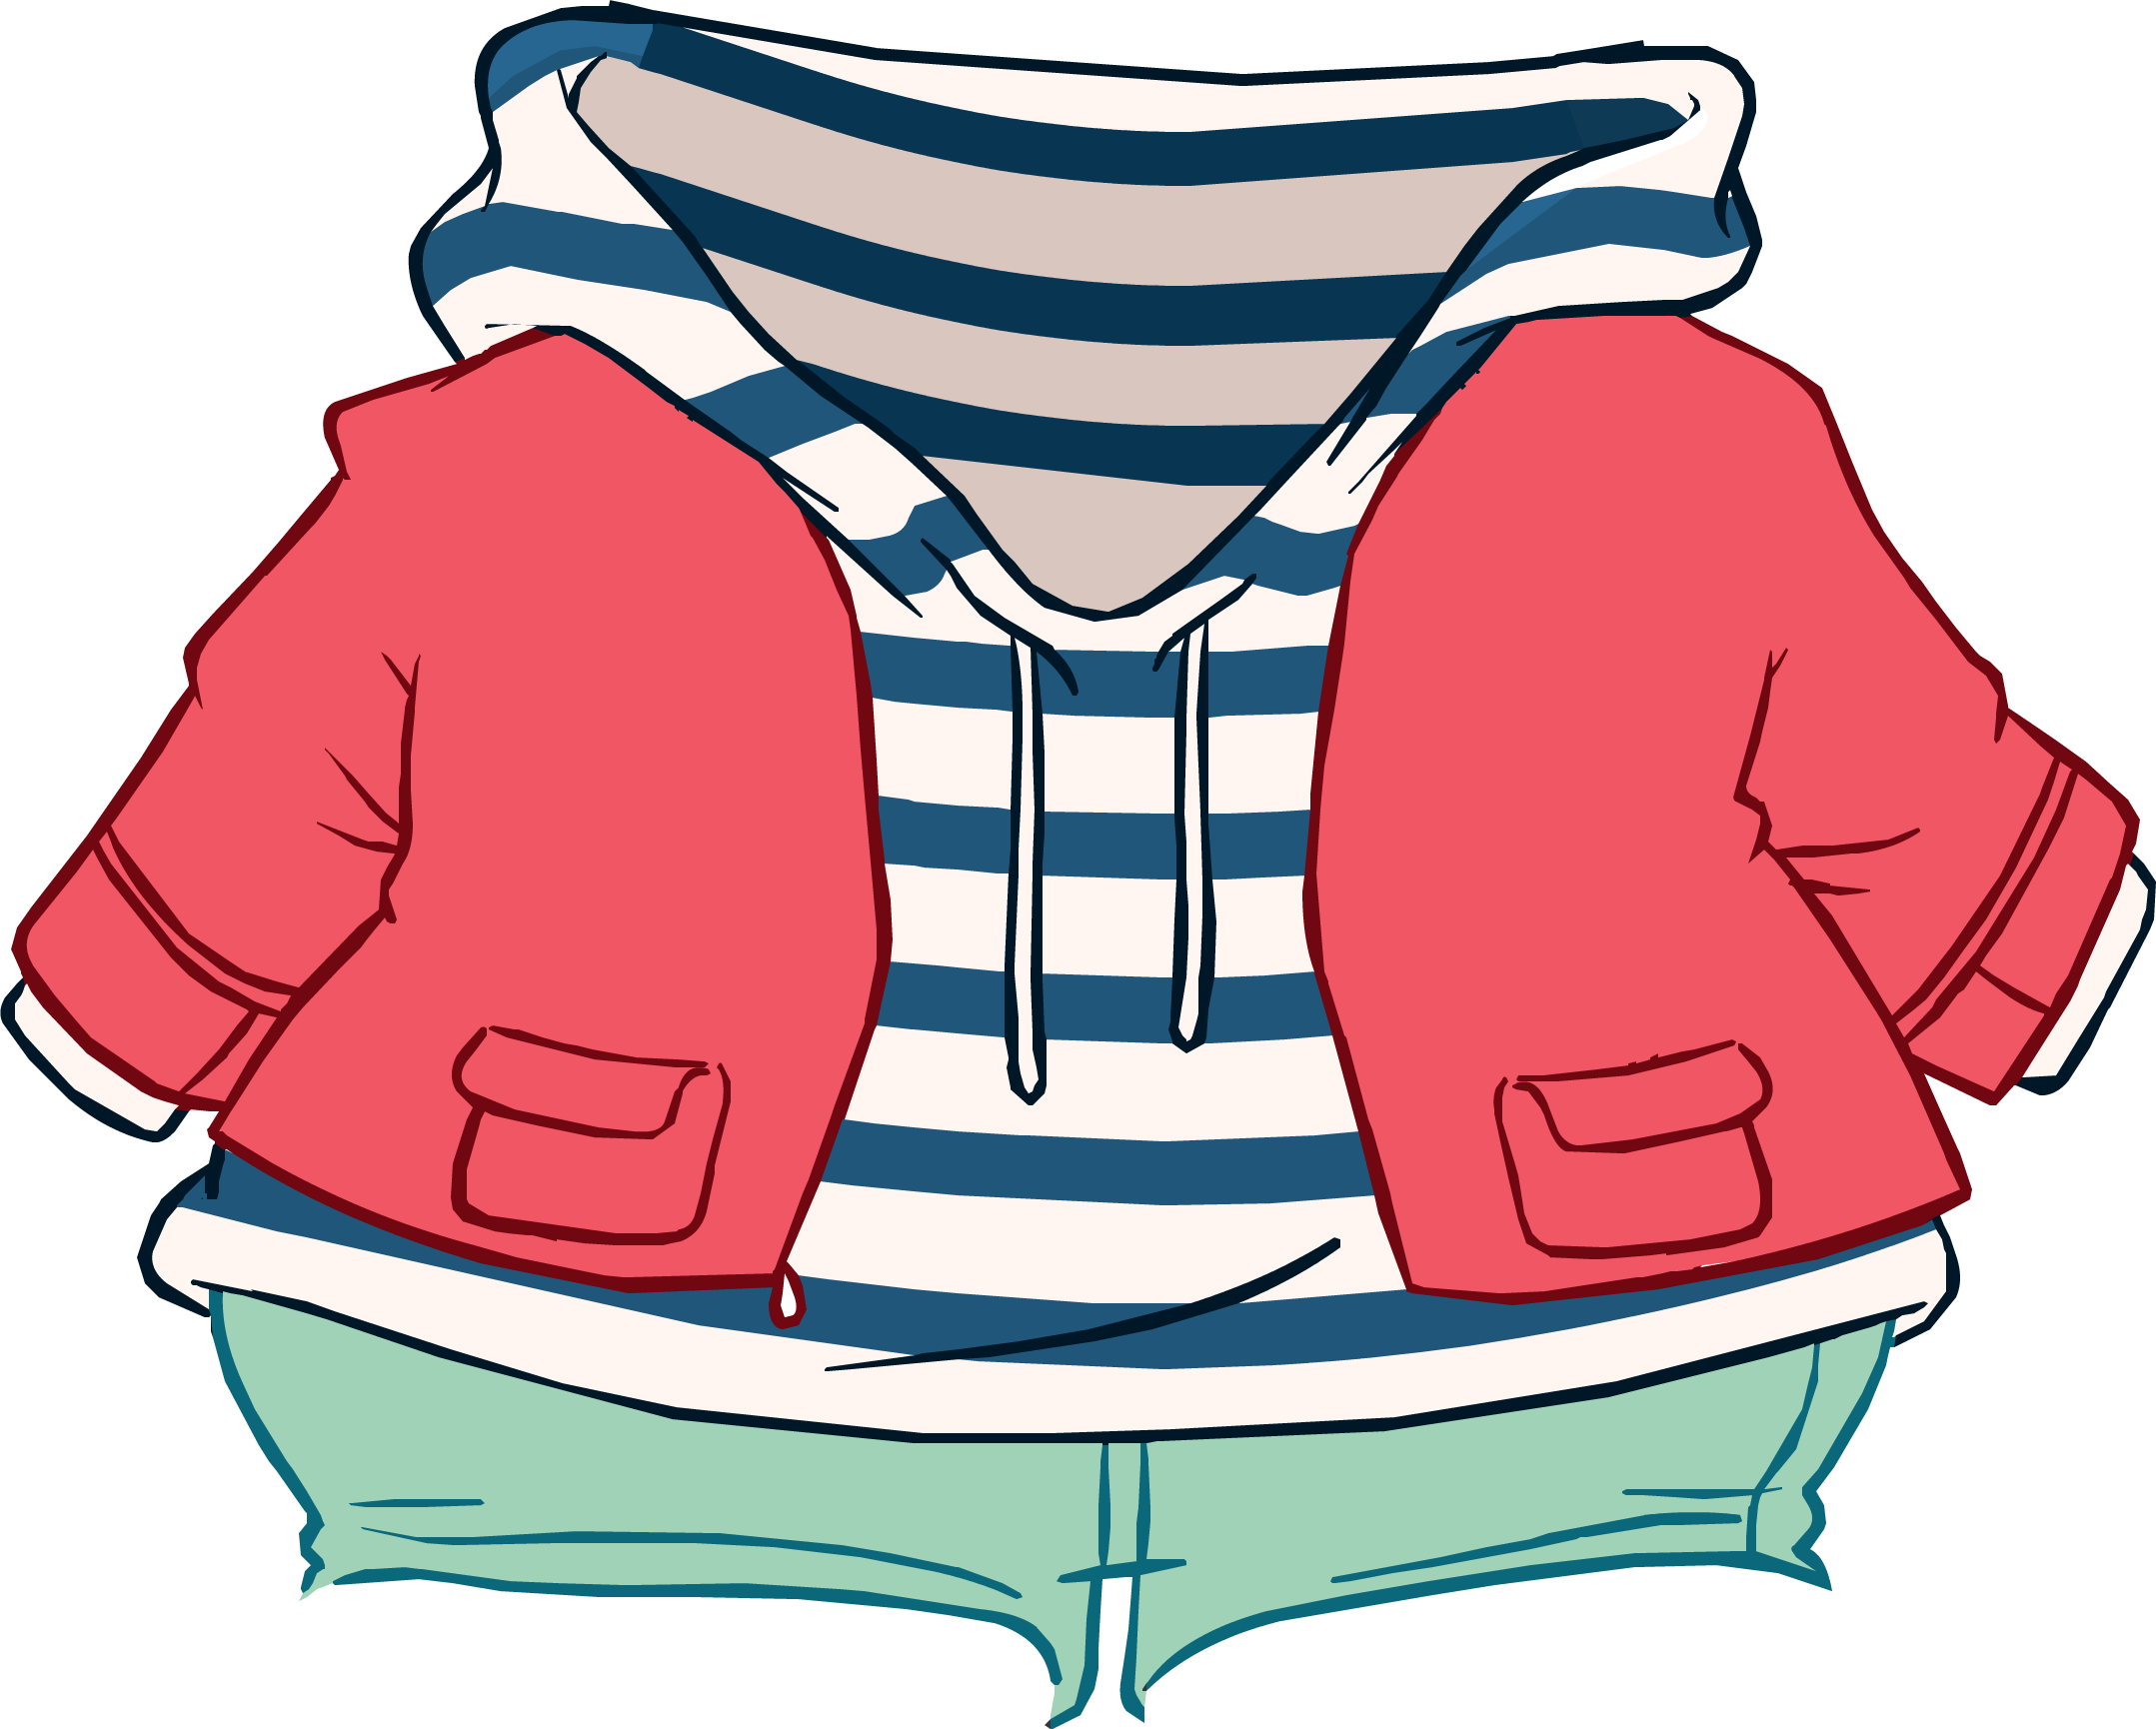 Striped and club penguin. Hoodie clipart pink jacket